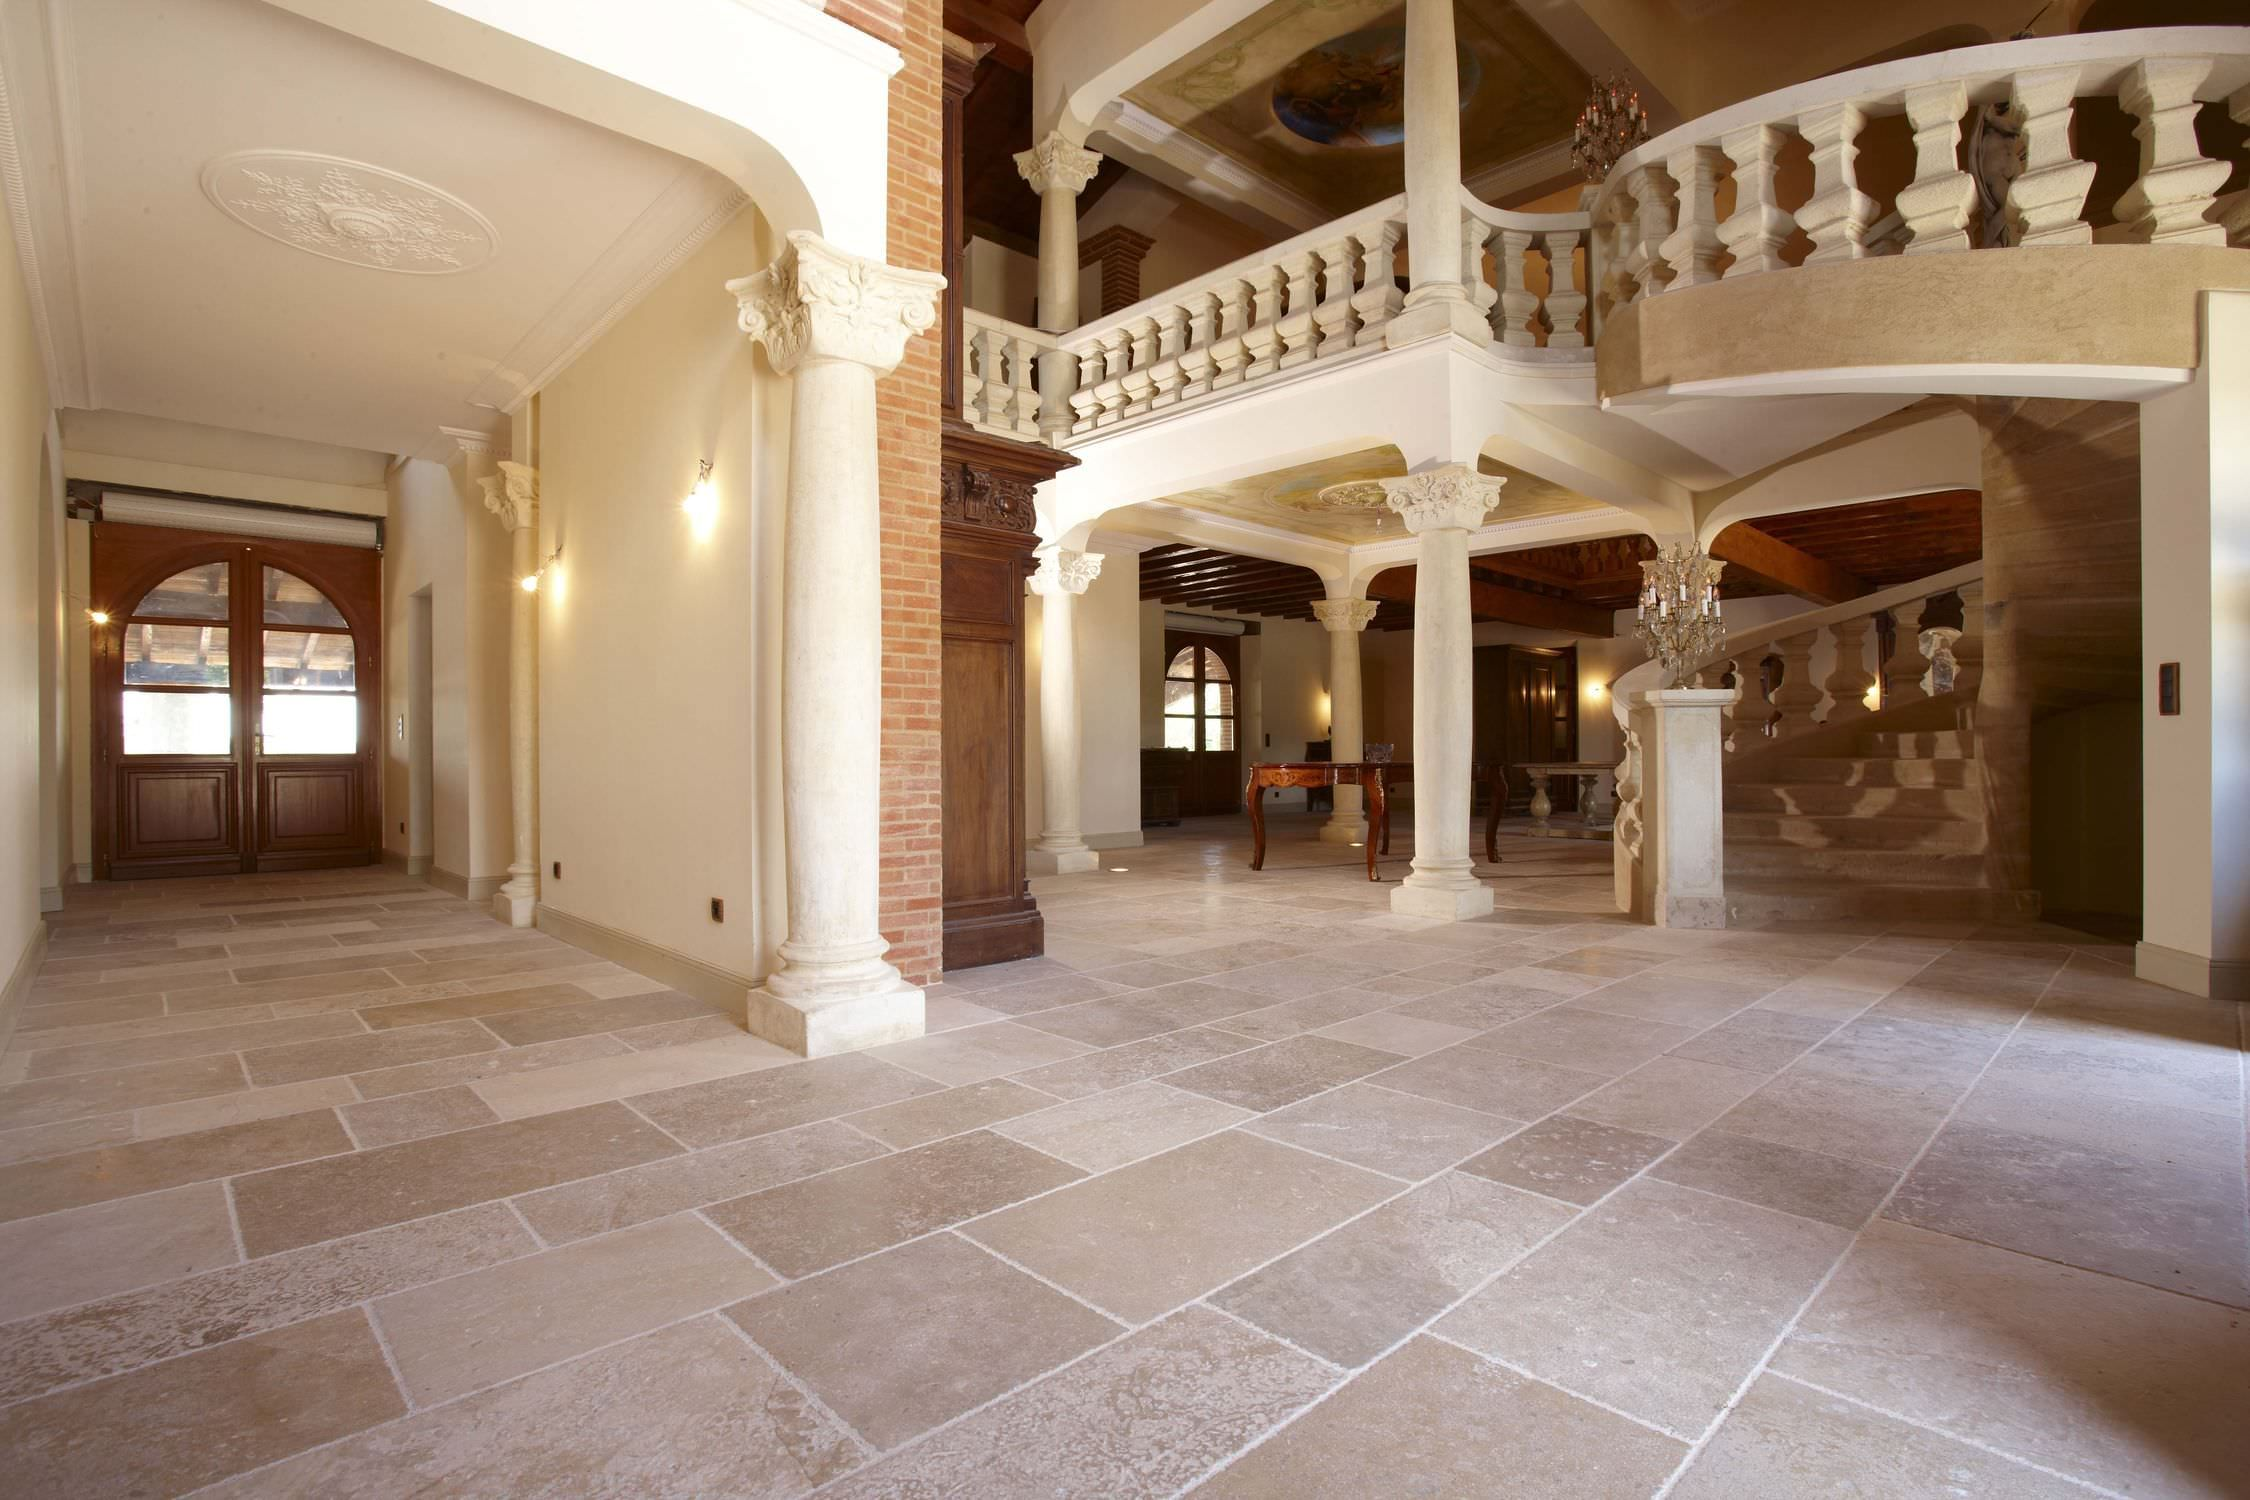 Accessories & Furniture Beautiful Cream Natural Stone Floor Tile For